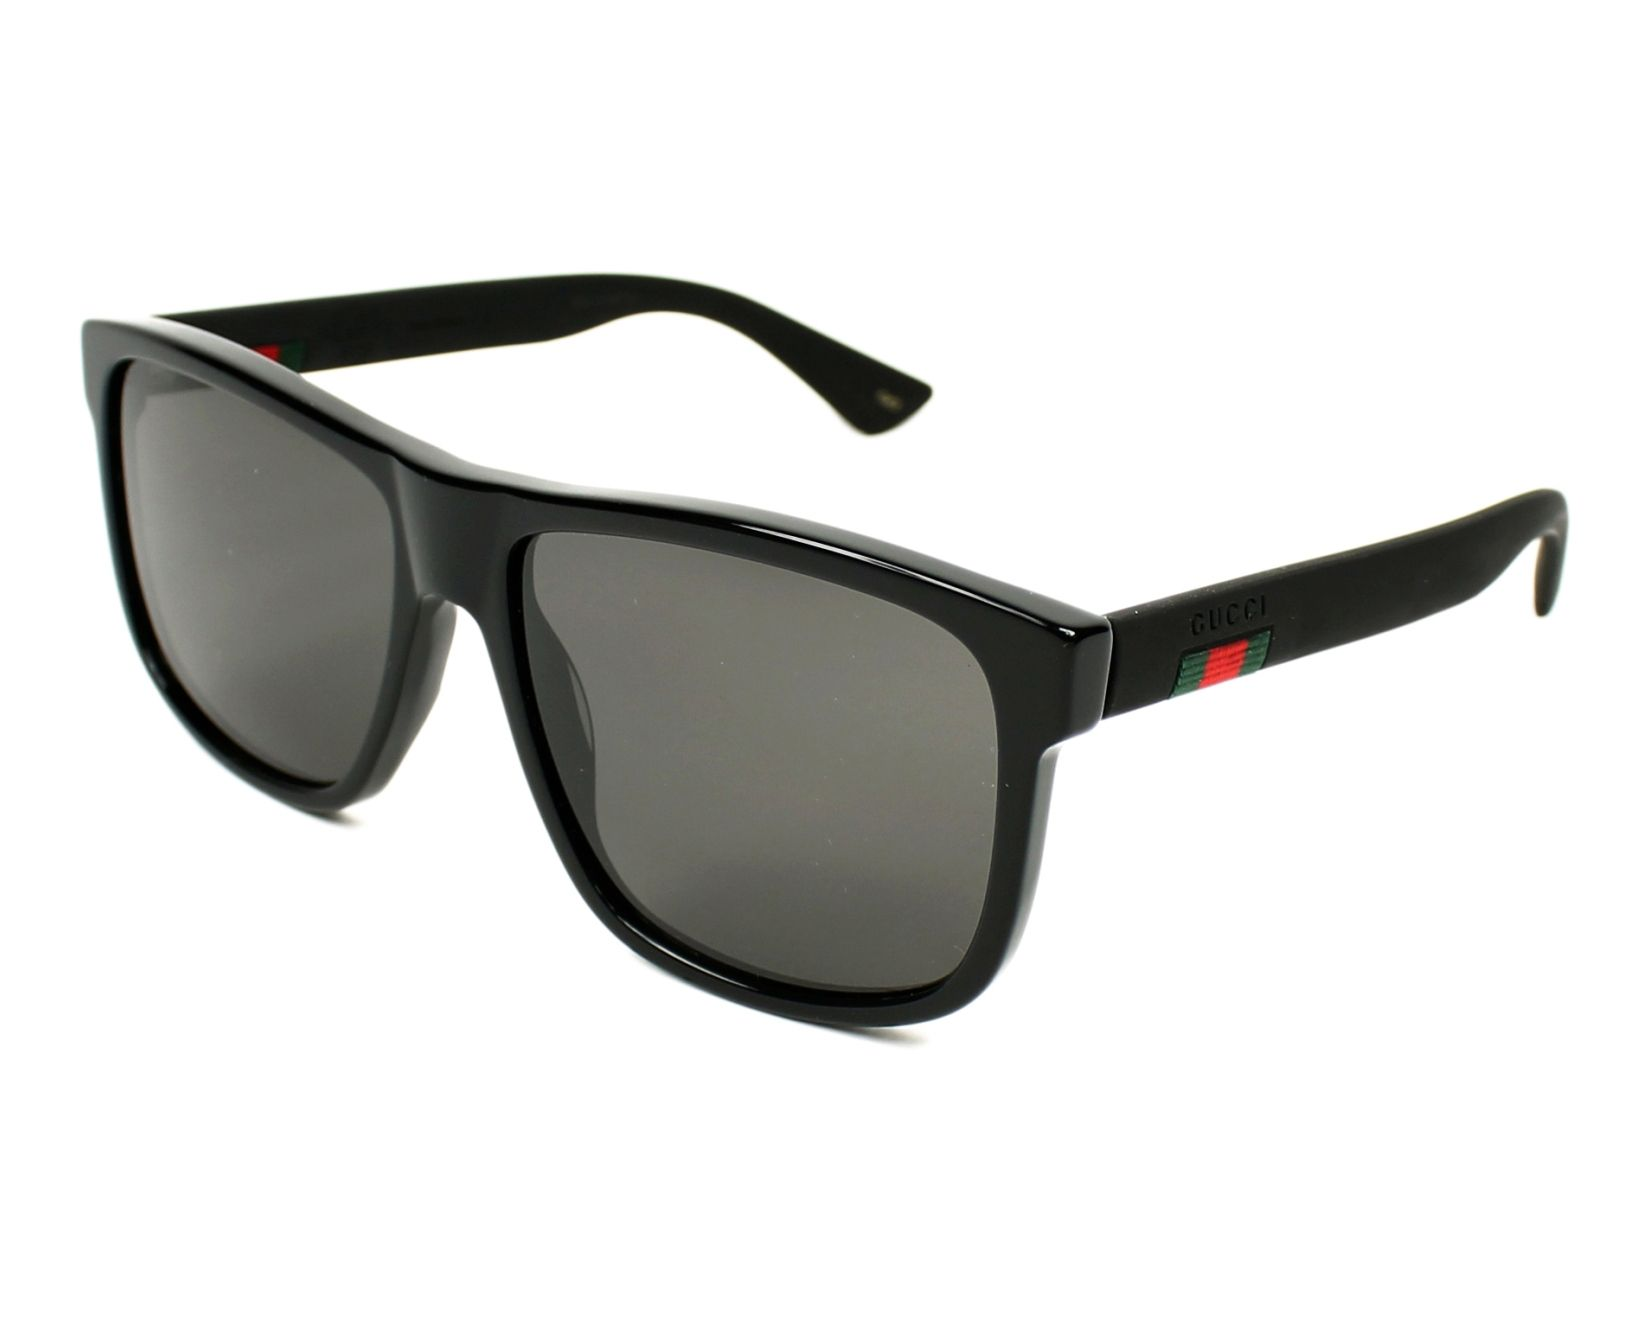 7dd3b5fd50 Sunglasses Gucci GG-0010-S 001 58-16 Black Black profile view